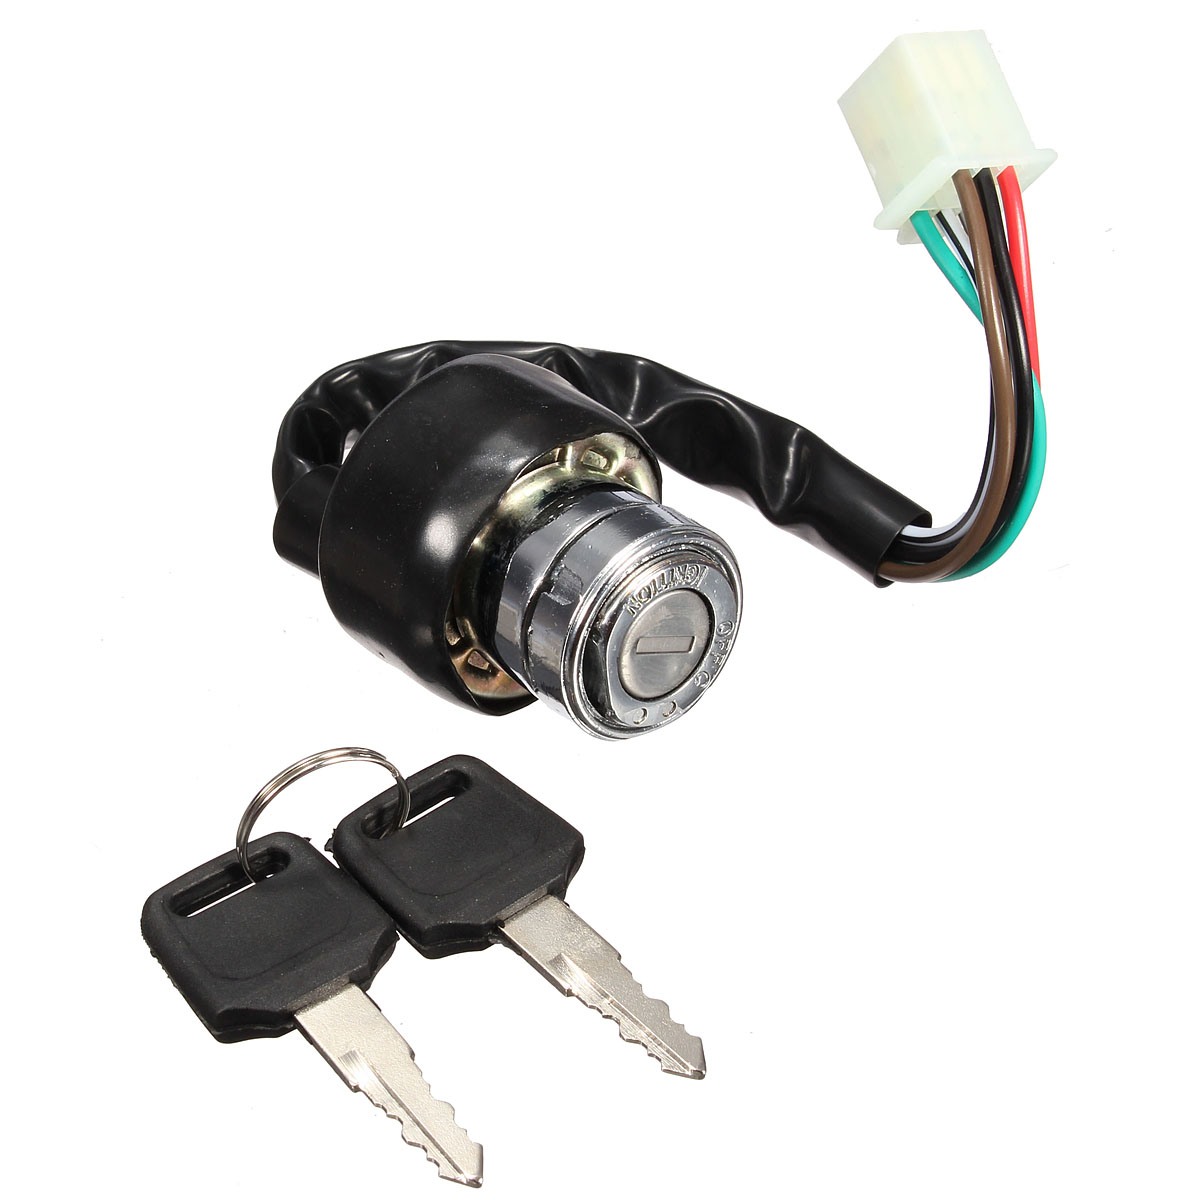 Atv Ignition Switch Wiring Manual List Of Schematic Circuit Diagram Chinese Scooter Universal Motorcycle Off Road Vehicles 6 Wire Rh Aliexpress Com